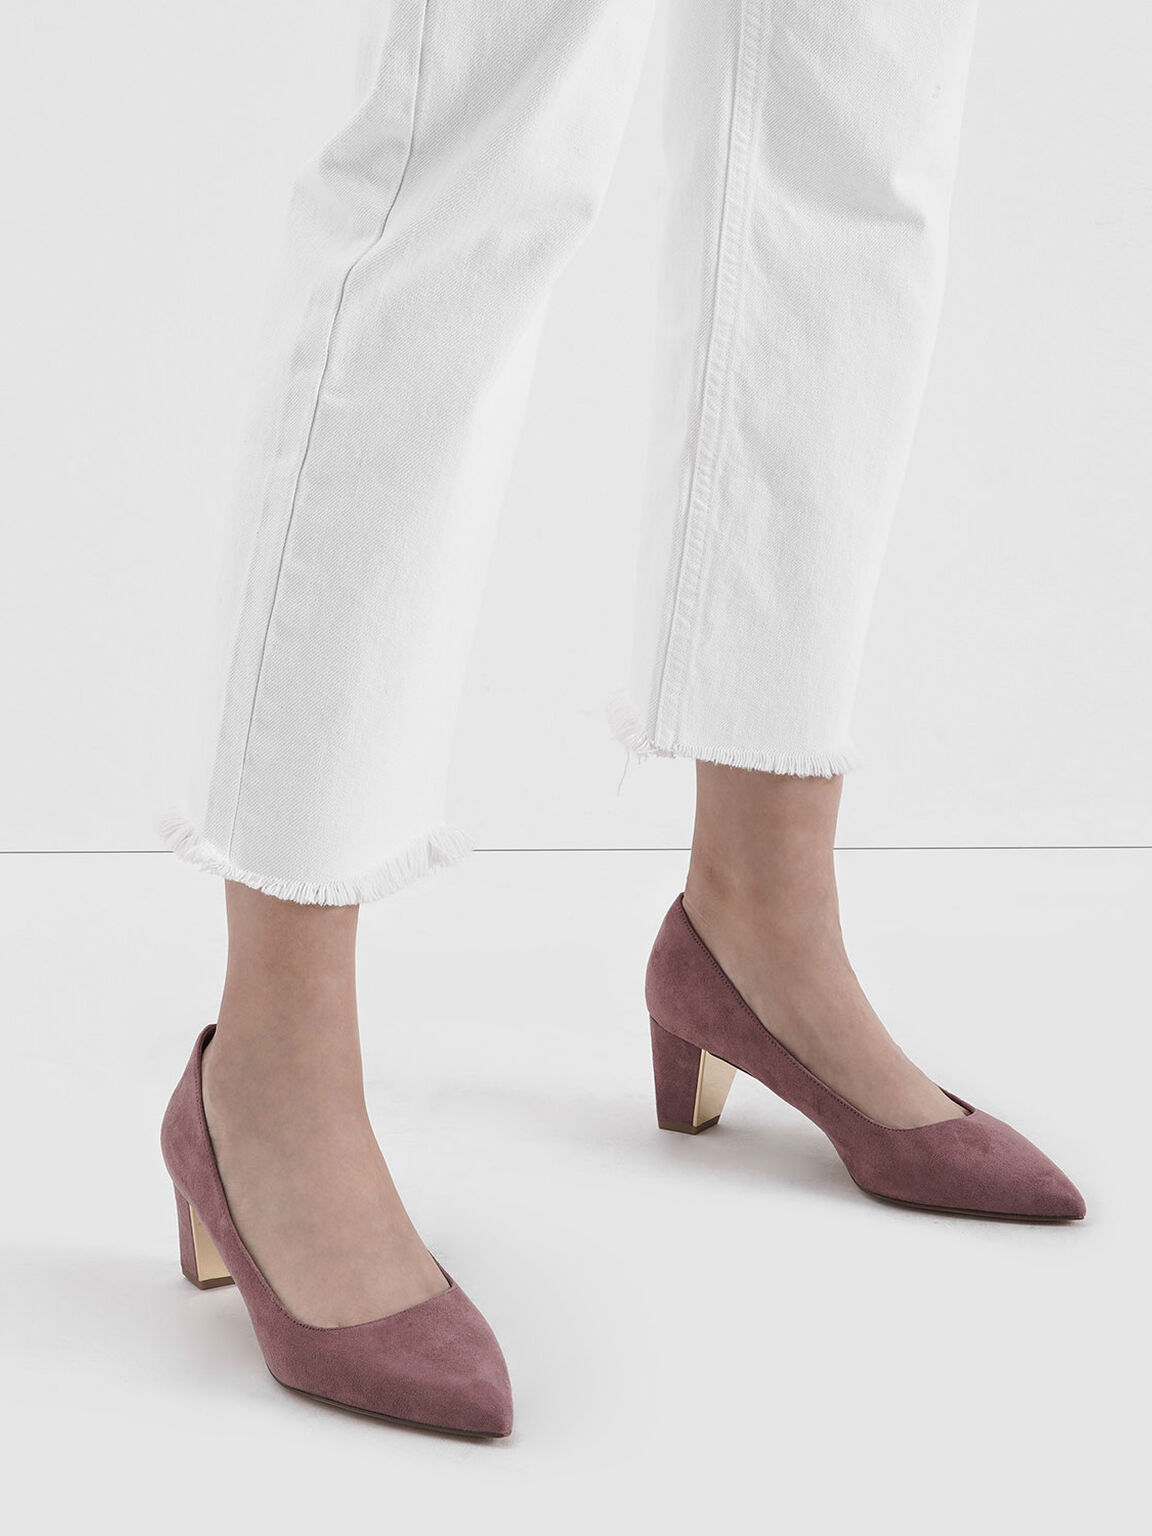 Textured Chunky Heel Pumps, Mauve, hi-res